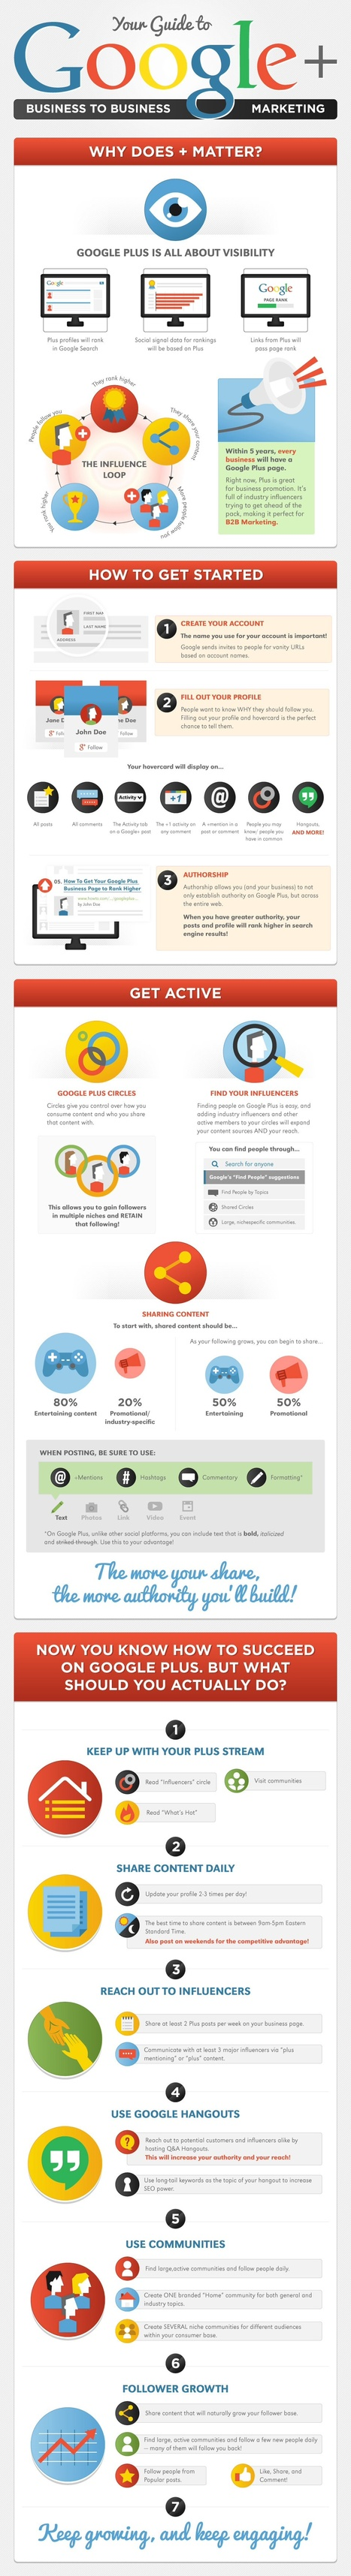 Your Guide to Google+ Business to Business Marketing #INFOGRAPHIC | SEO | Scoop.it